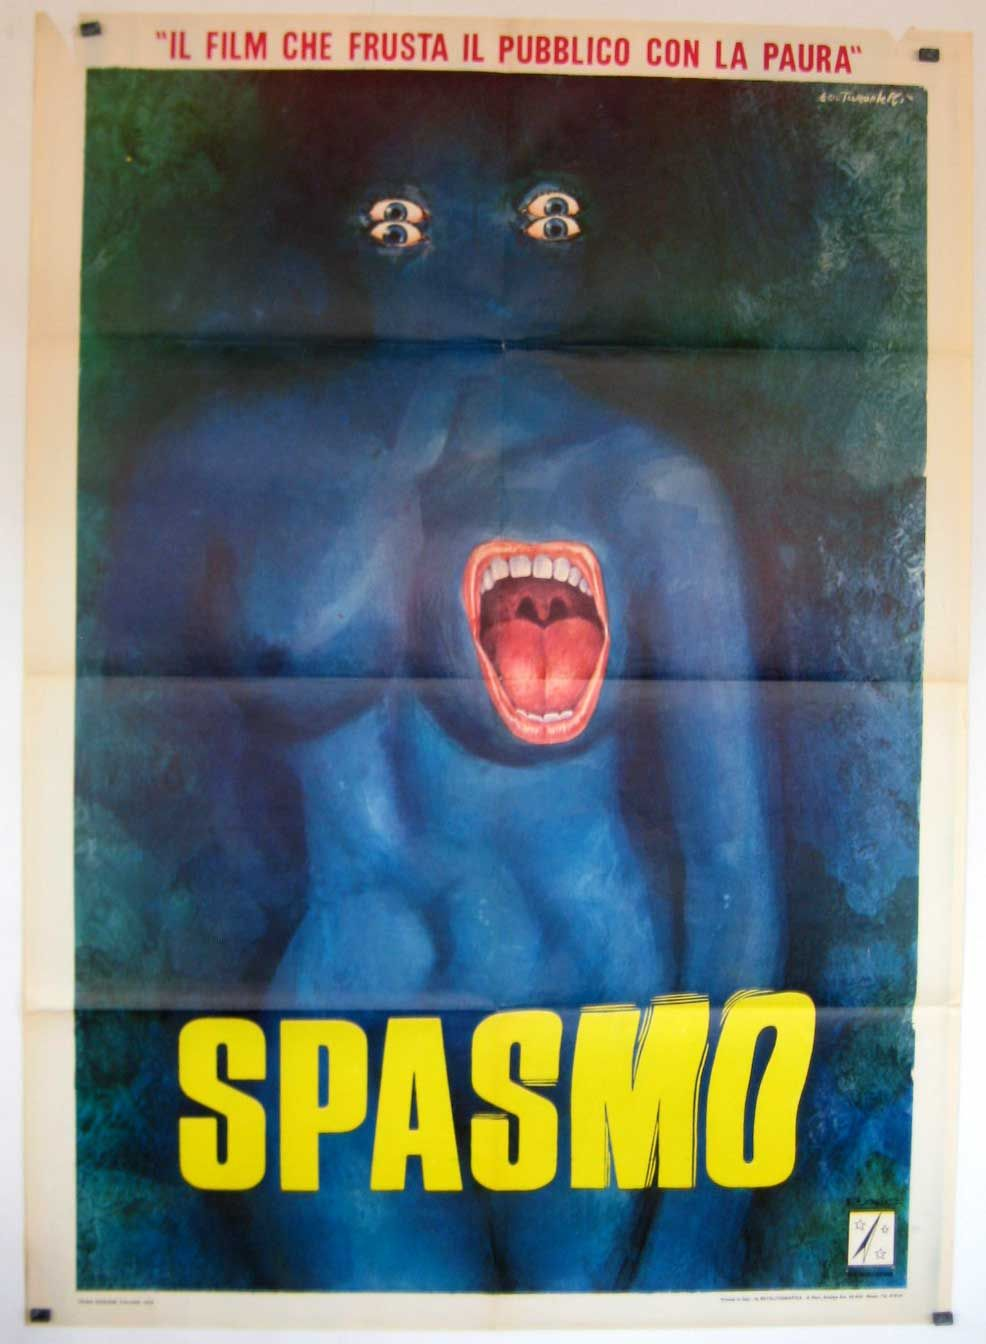 Original Film Title: SPASMO Poster Title: SPASMO Director: UMBERTO LENZI Year: 1974 Film Nationality: ITALIA